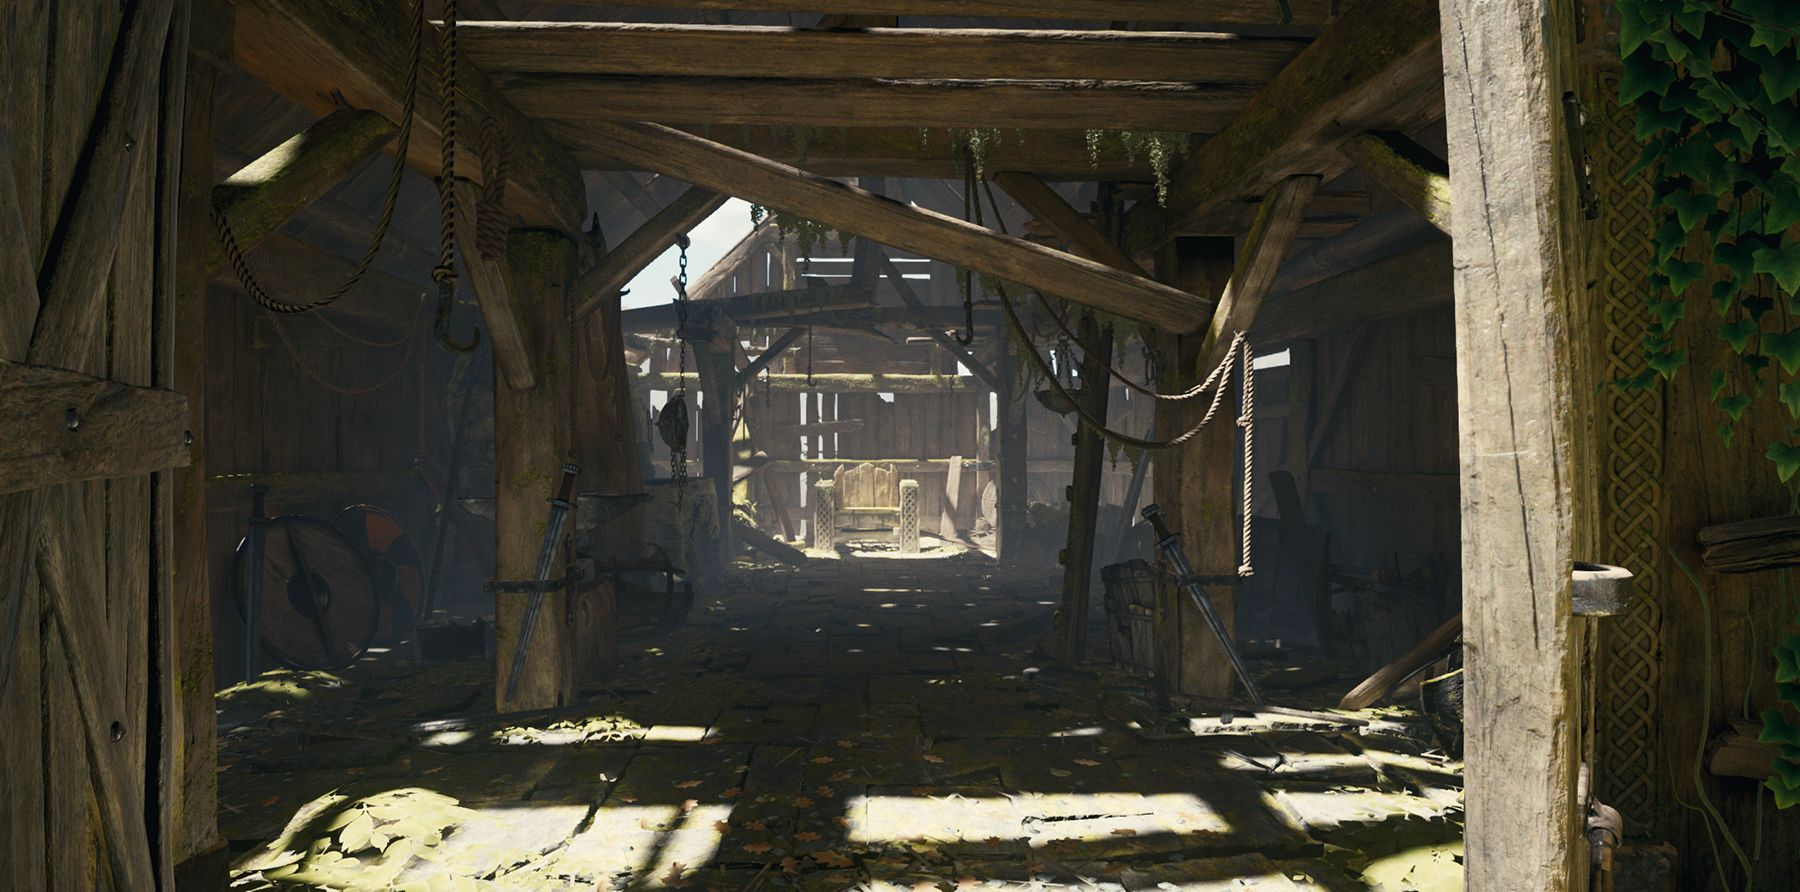 Game view of Smithy interior in 'The Blacksmith - Environments